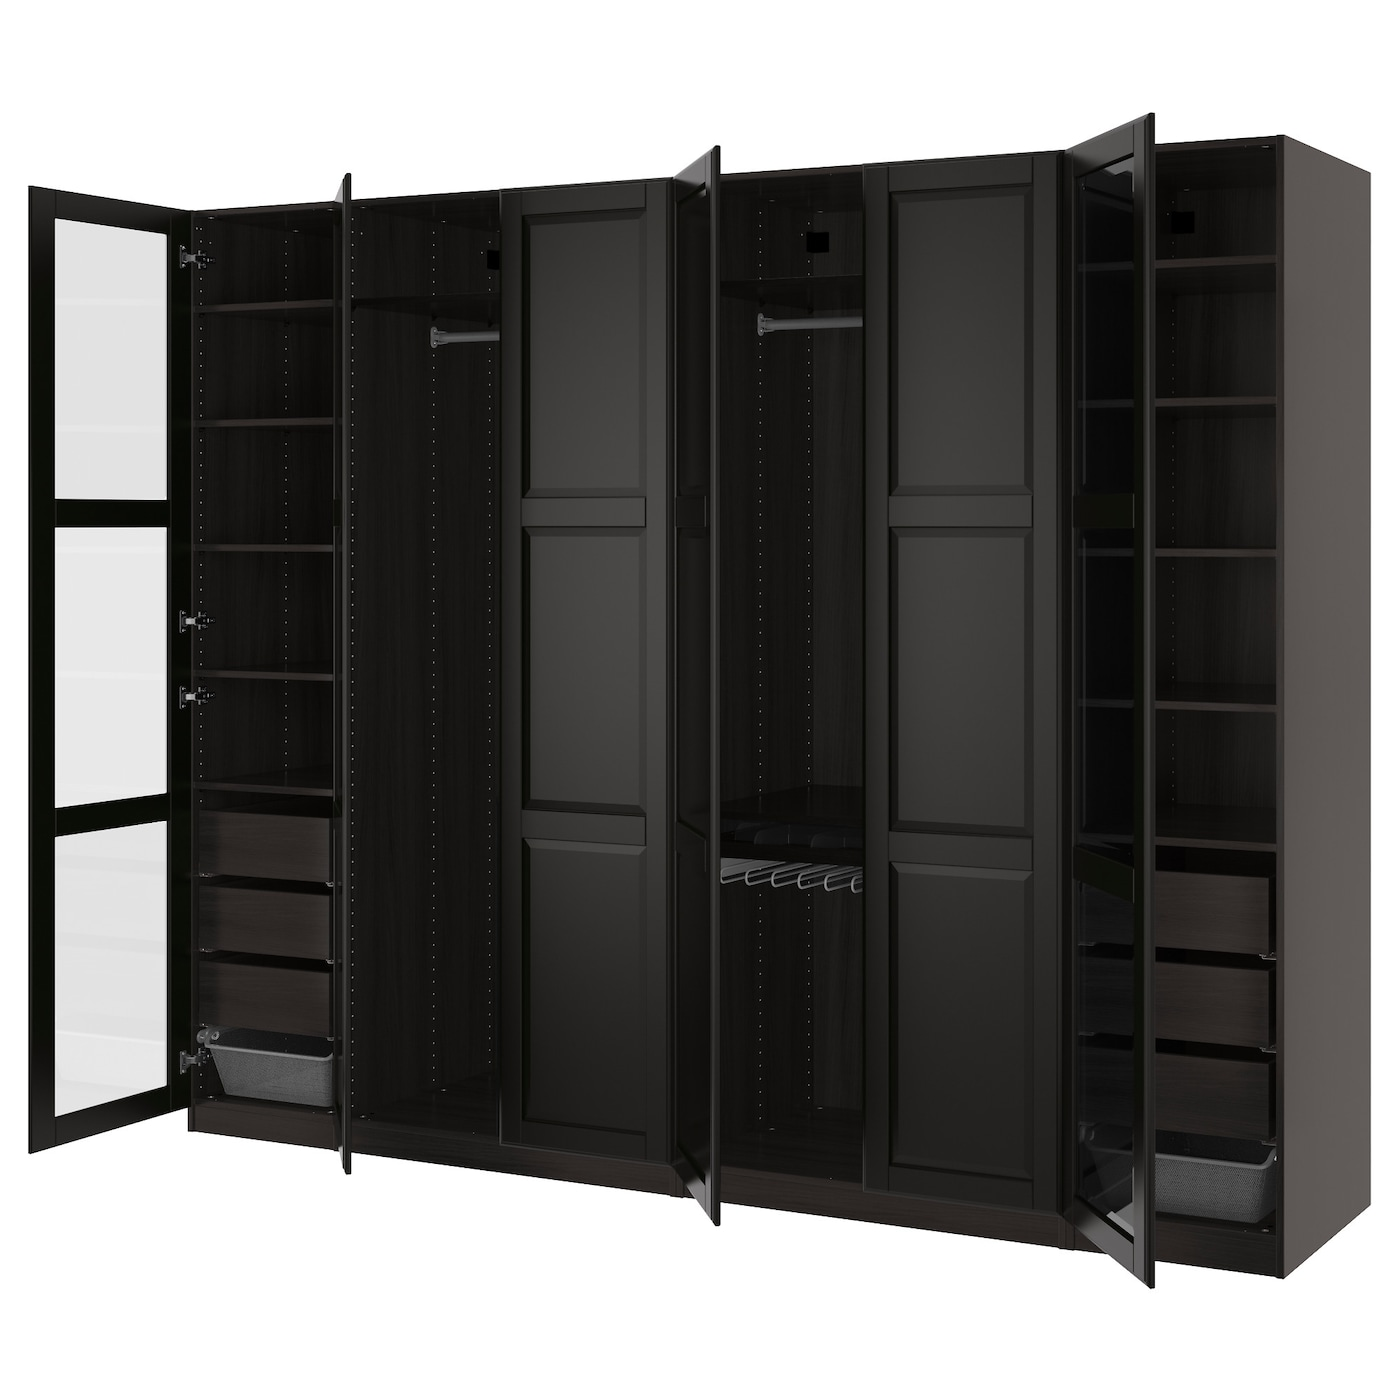 pax kledingkast zwartbruin undredal undredal glas 300 x 60 x 236 cm ikea. Black Bedroom Furniture Sets. Home Design Ideas